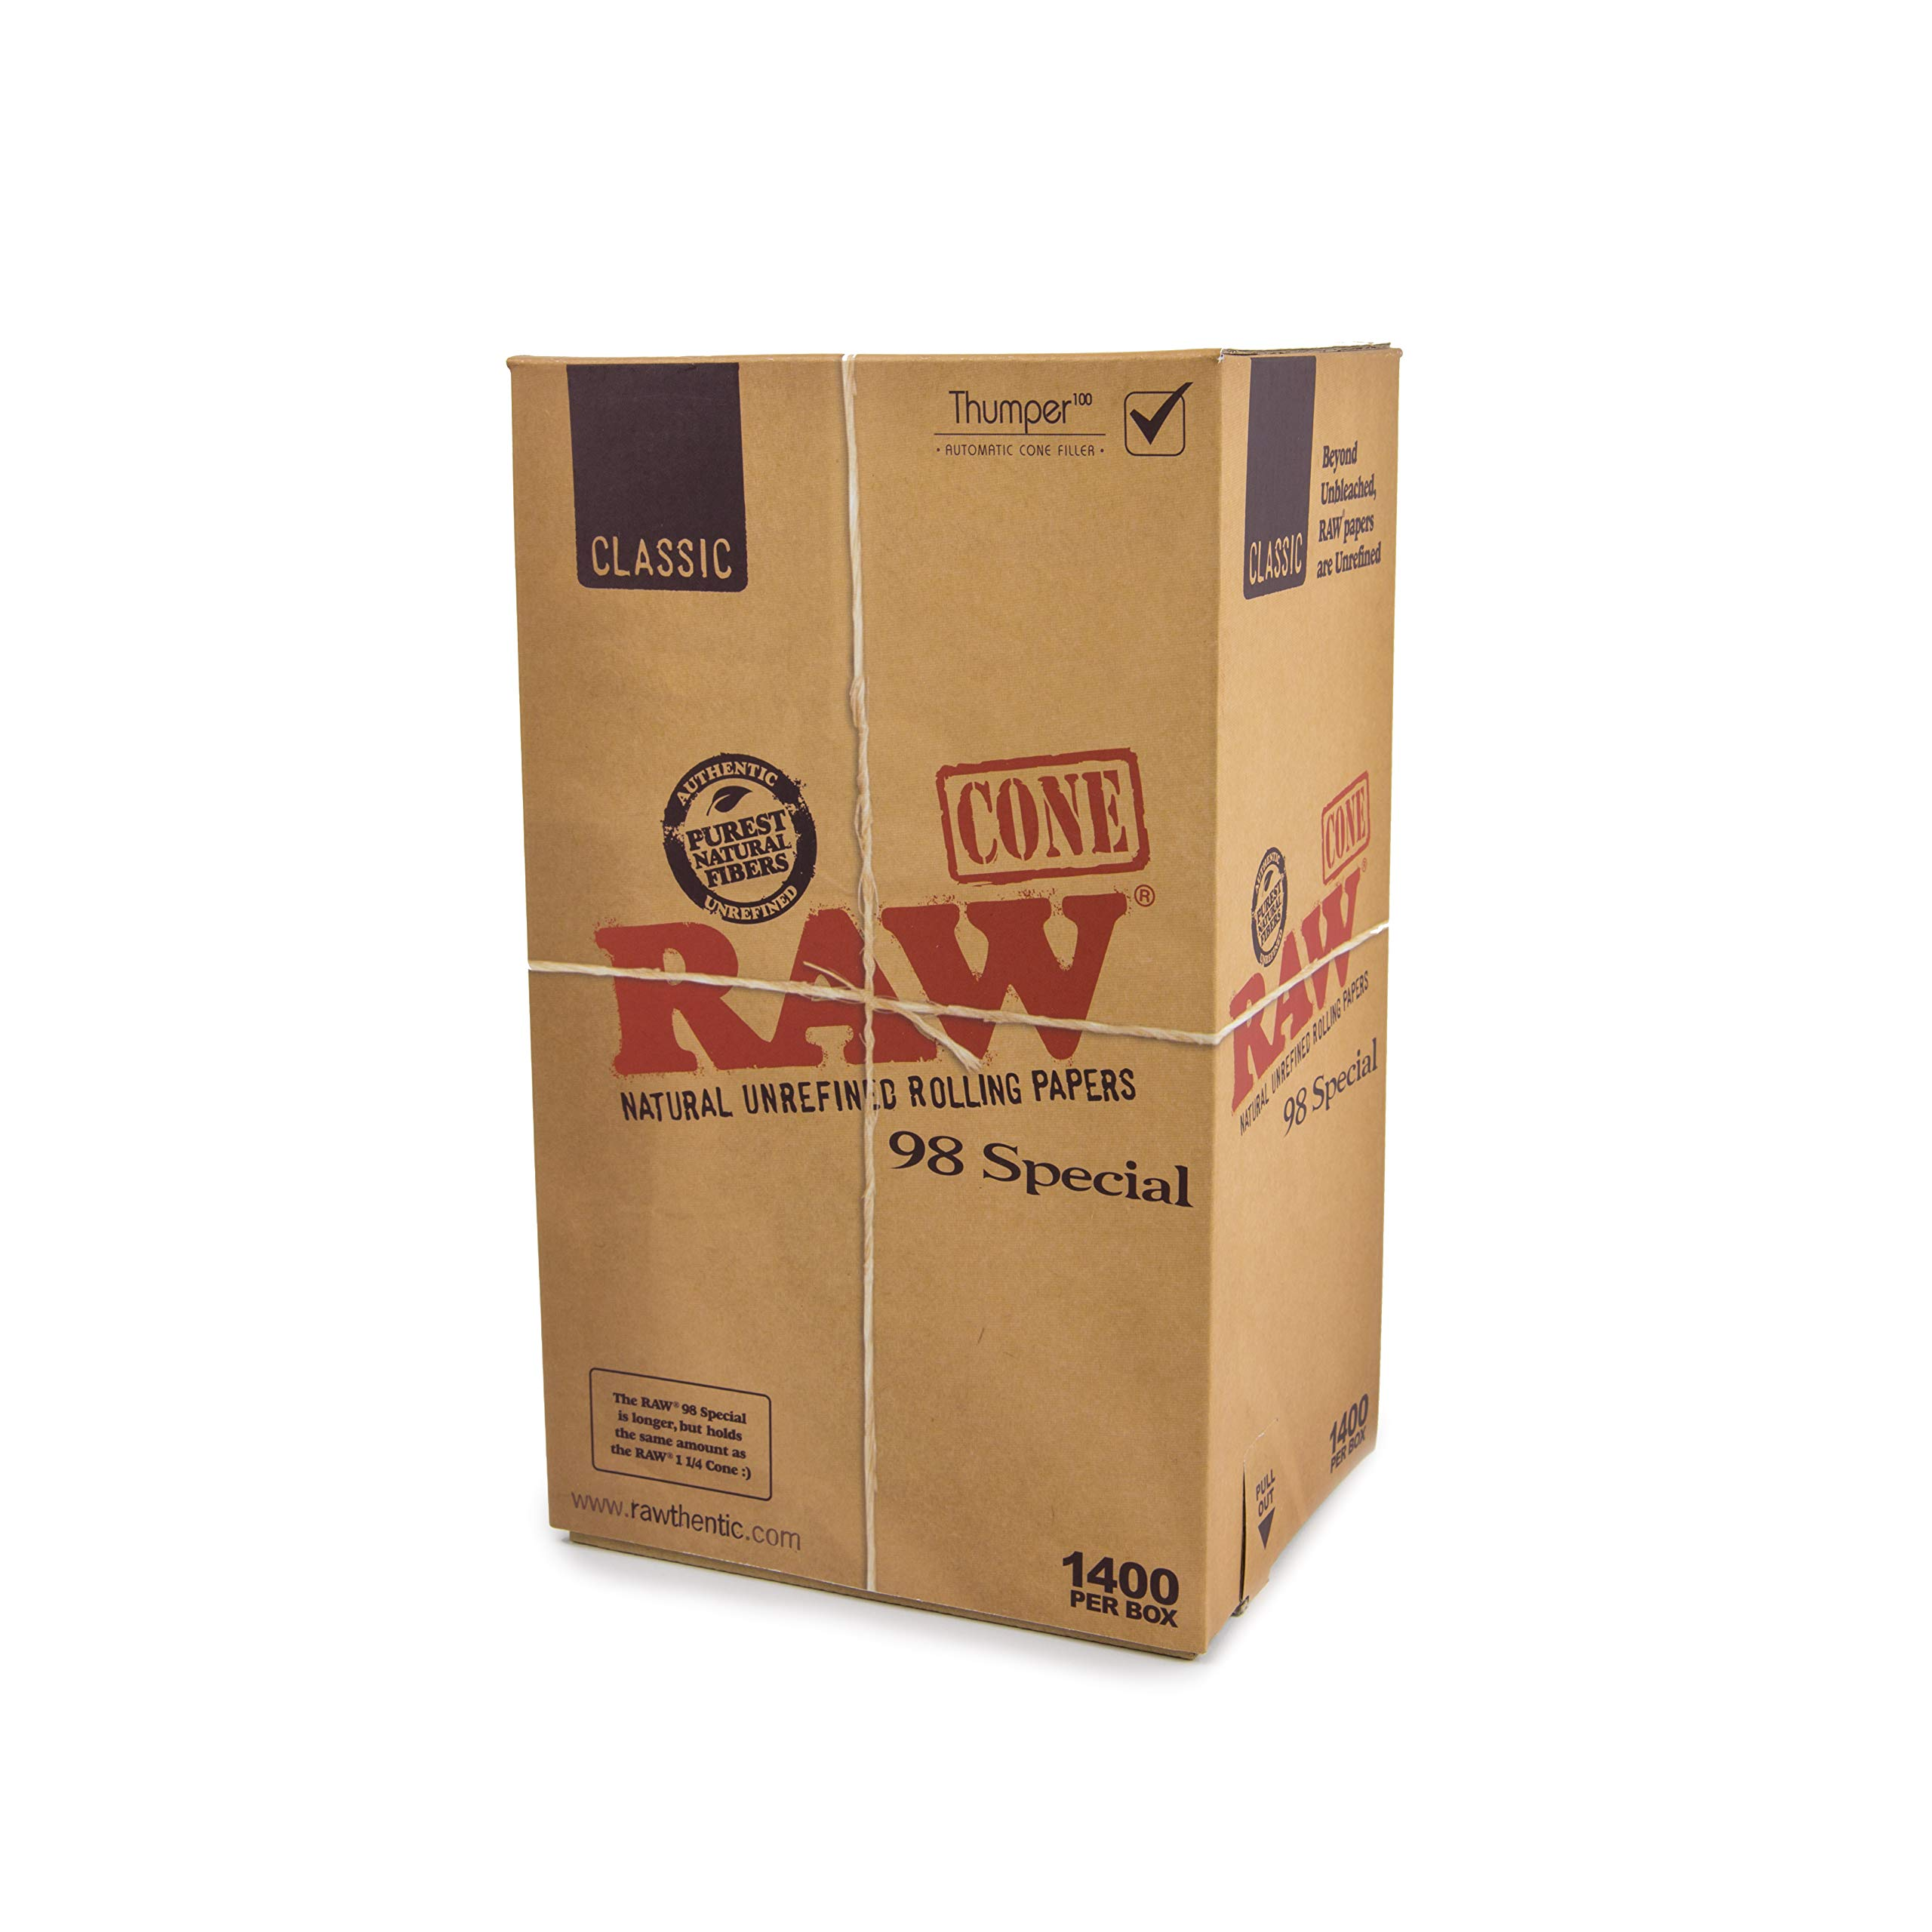 RAW Classic Natural Unrefined Rolling Papers - Pre Rolled Cones - 98 Special Size - 1400 Cones Per Box